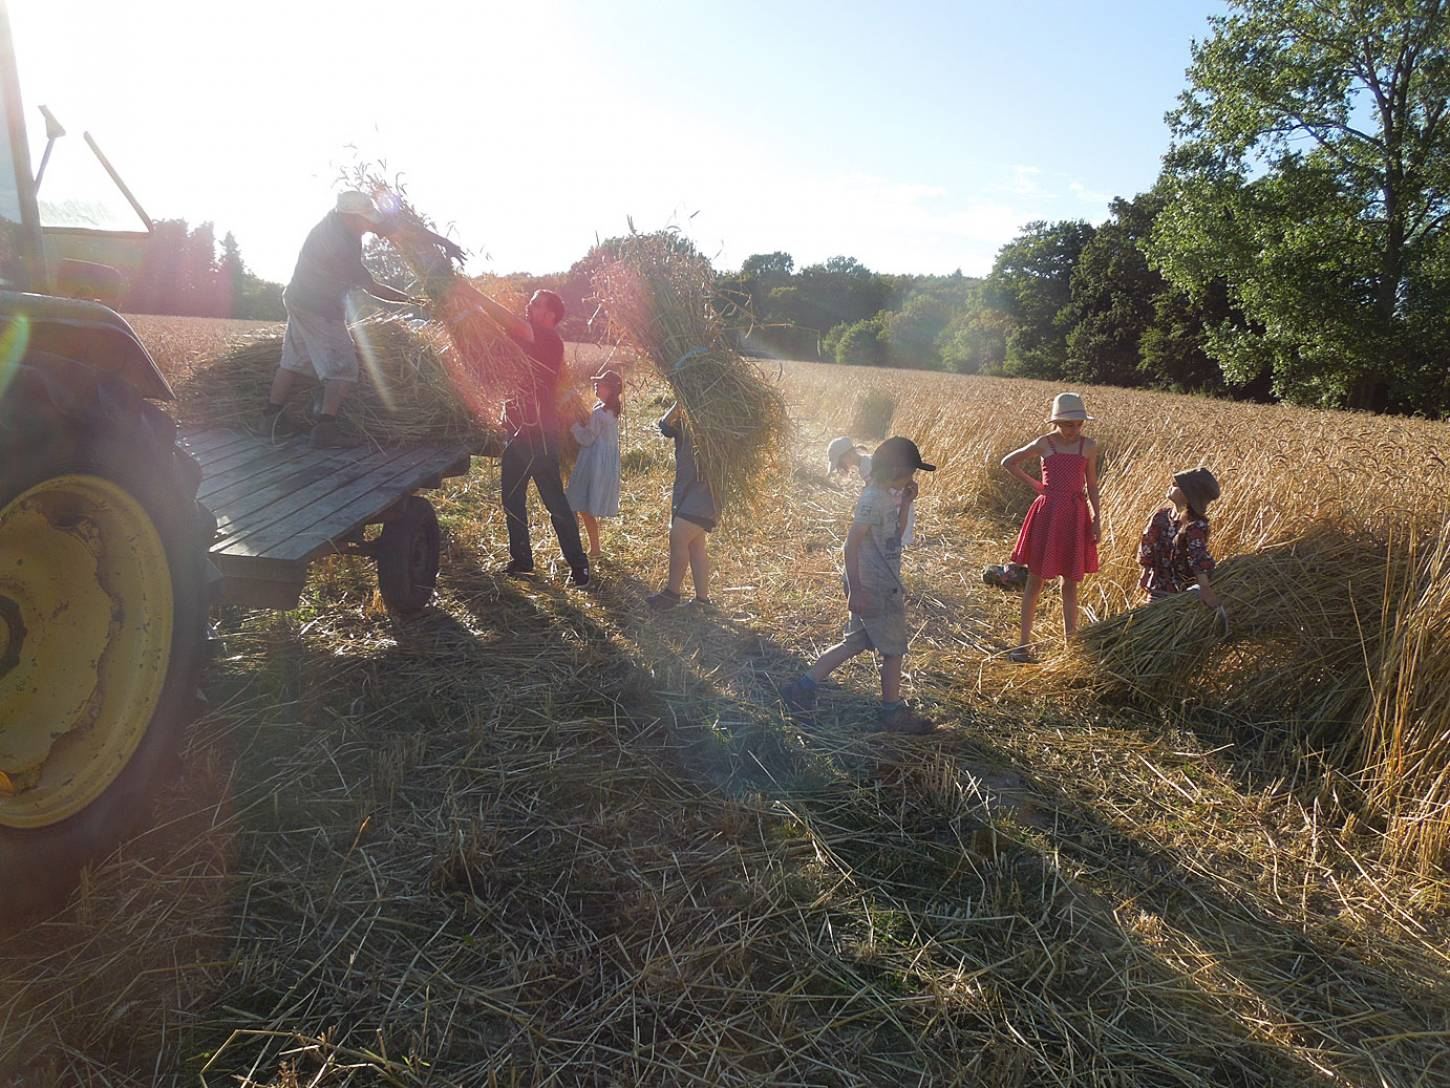 WoWo manual harvest - harvest home - 6:58pm&nbsp;9<sup>th</sup>&nbsp;Aug.&nbsp;'15